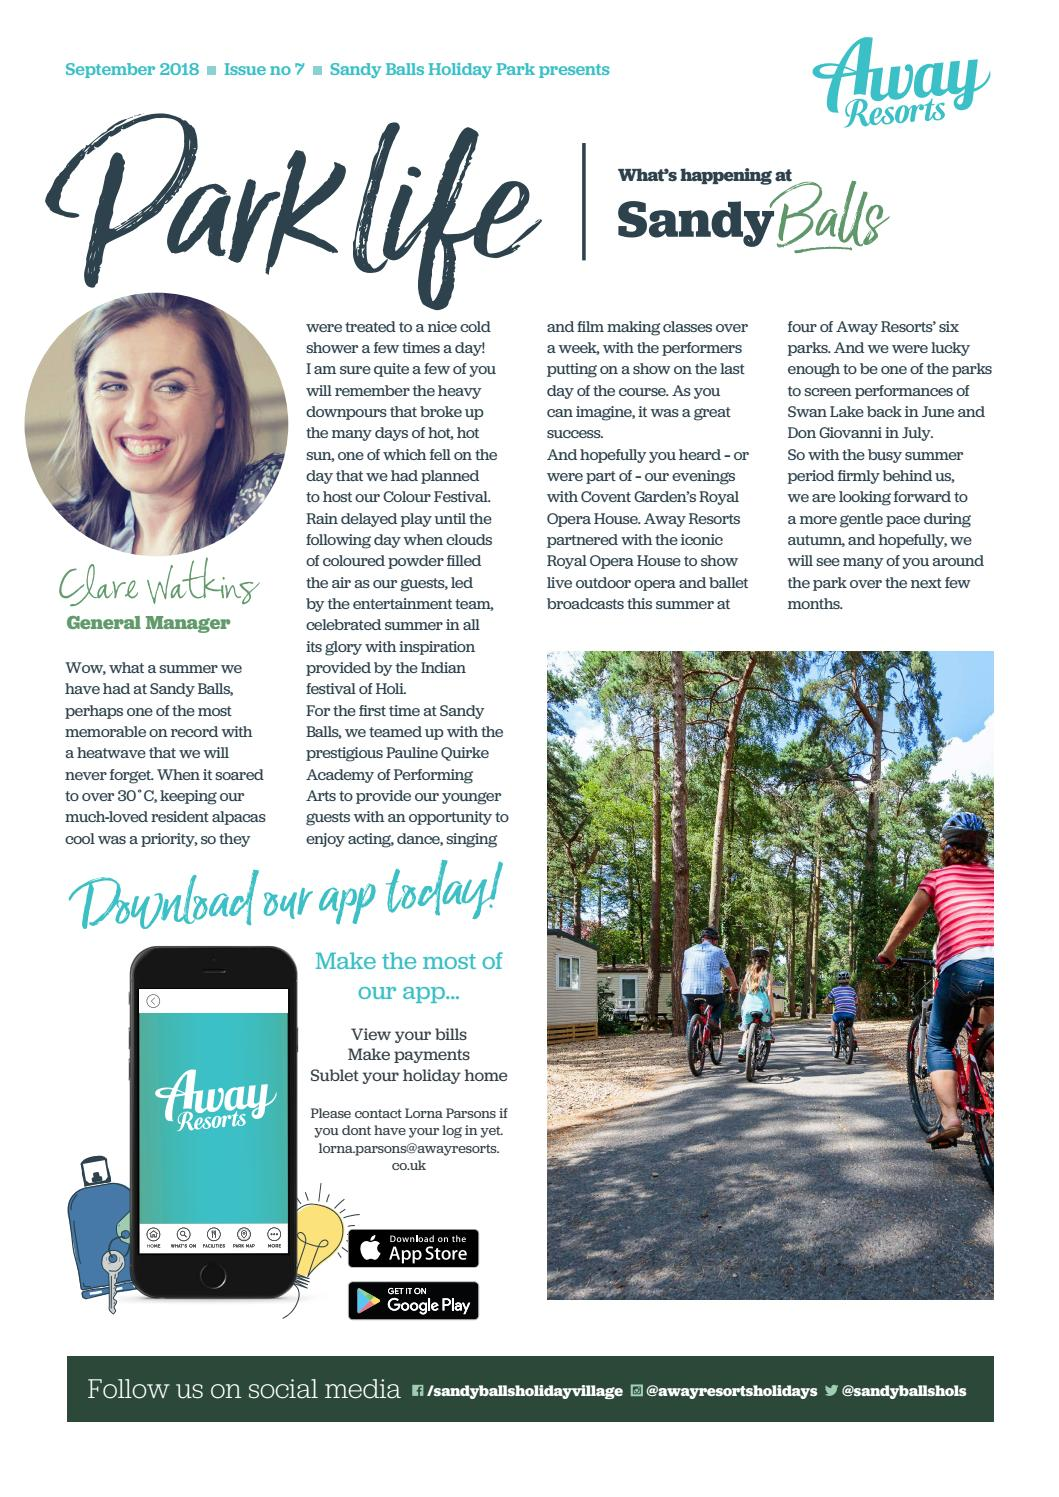 Sandy Balls Owners Newsletter - Sep 18 by Away Resorts - issuu